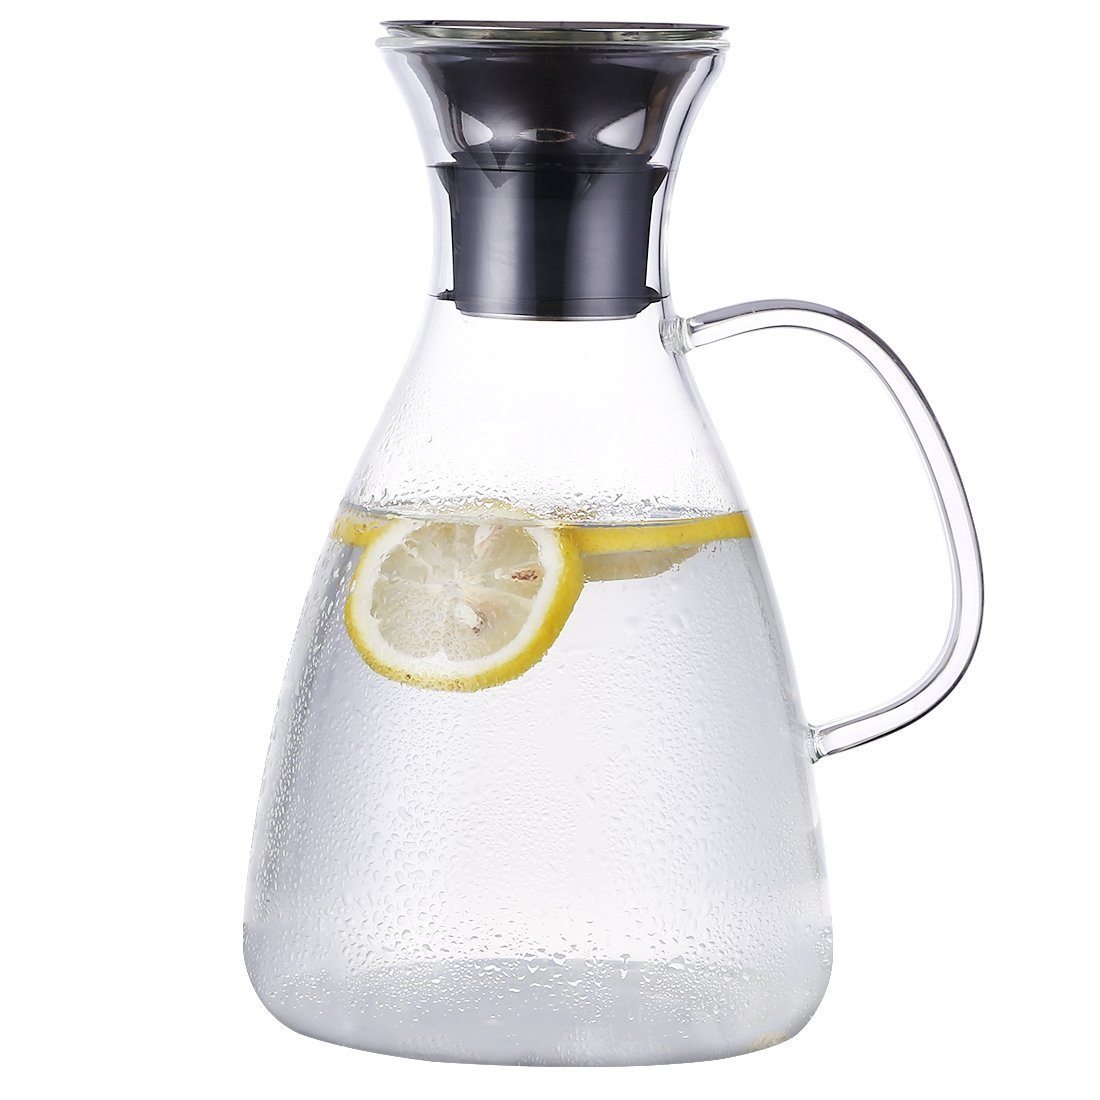 ONEISALL GYBL436 Glass Carafe with Stainless Steel Flip-top Lid and Handle, Hot and Cold Glass Water Pitcher, Tea/Coffee Maker & Cafe, Iced Tea, Beverage Pitcher for Decanting and Serving Wine, 1500ML Huizhou Weifan Trading Co. Ltd